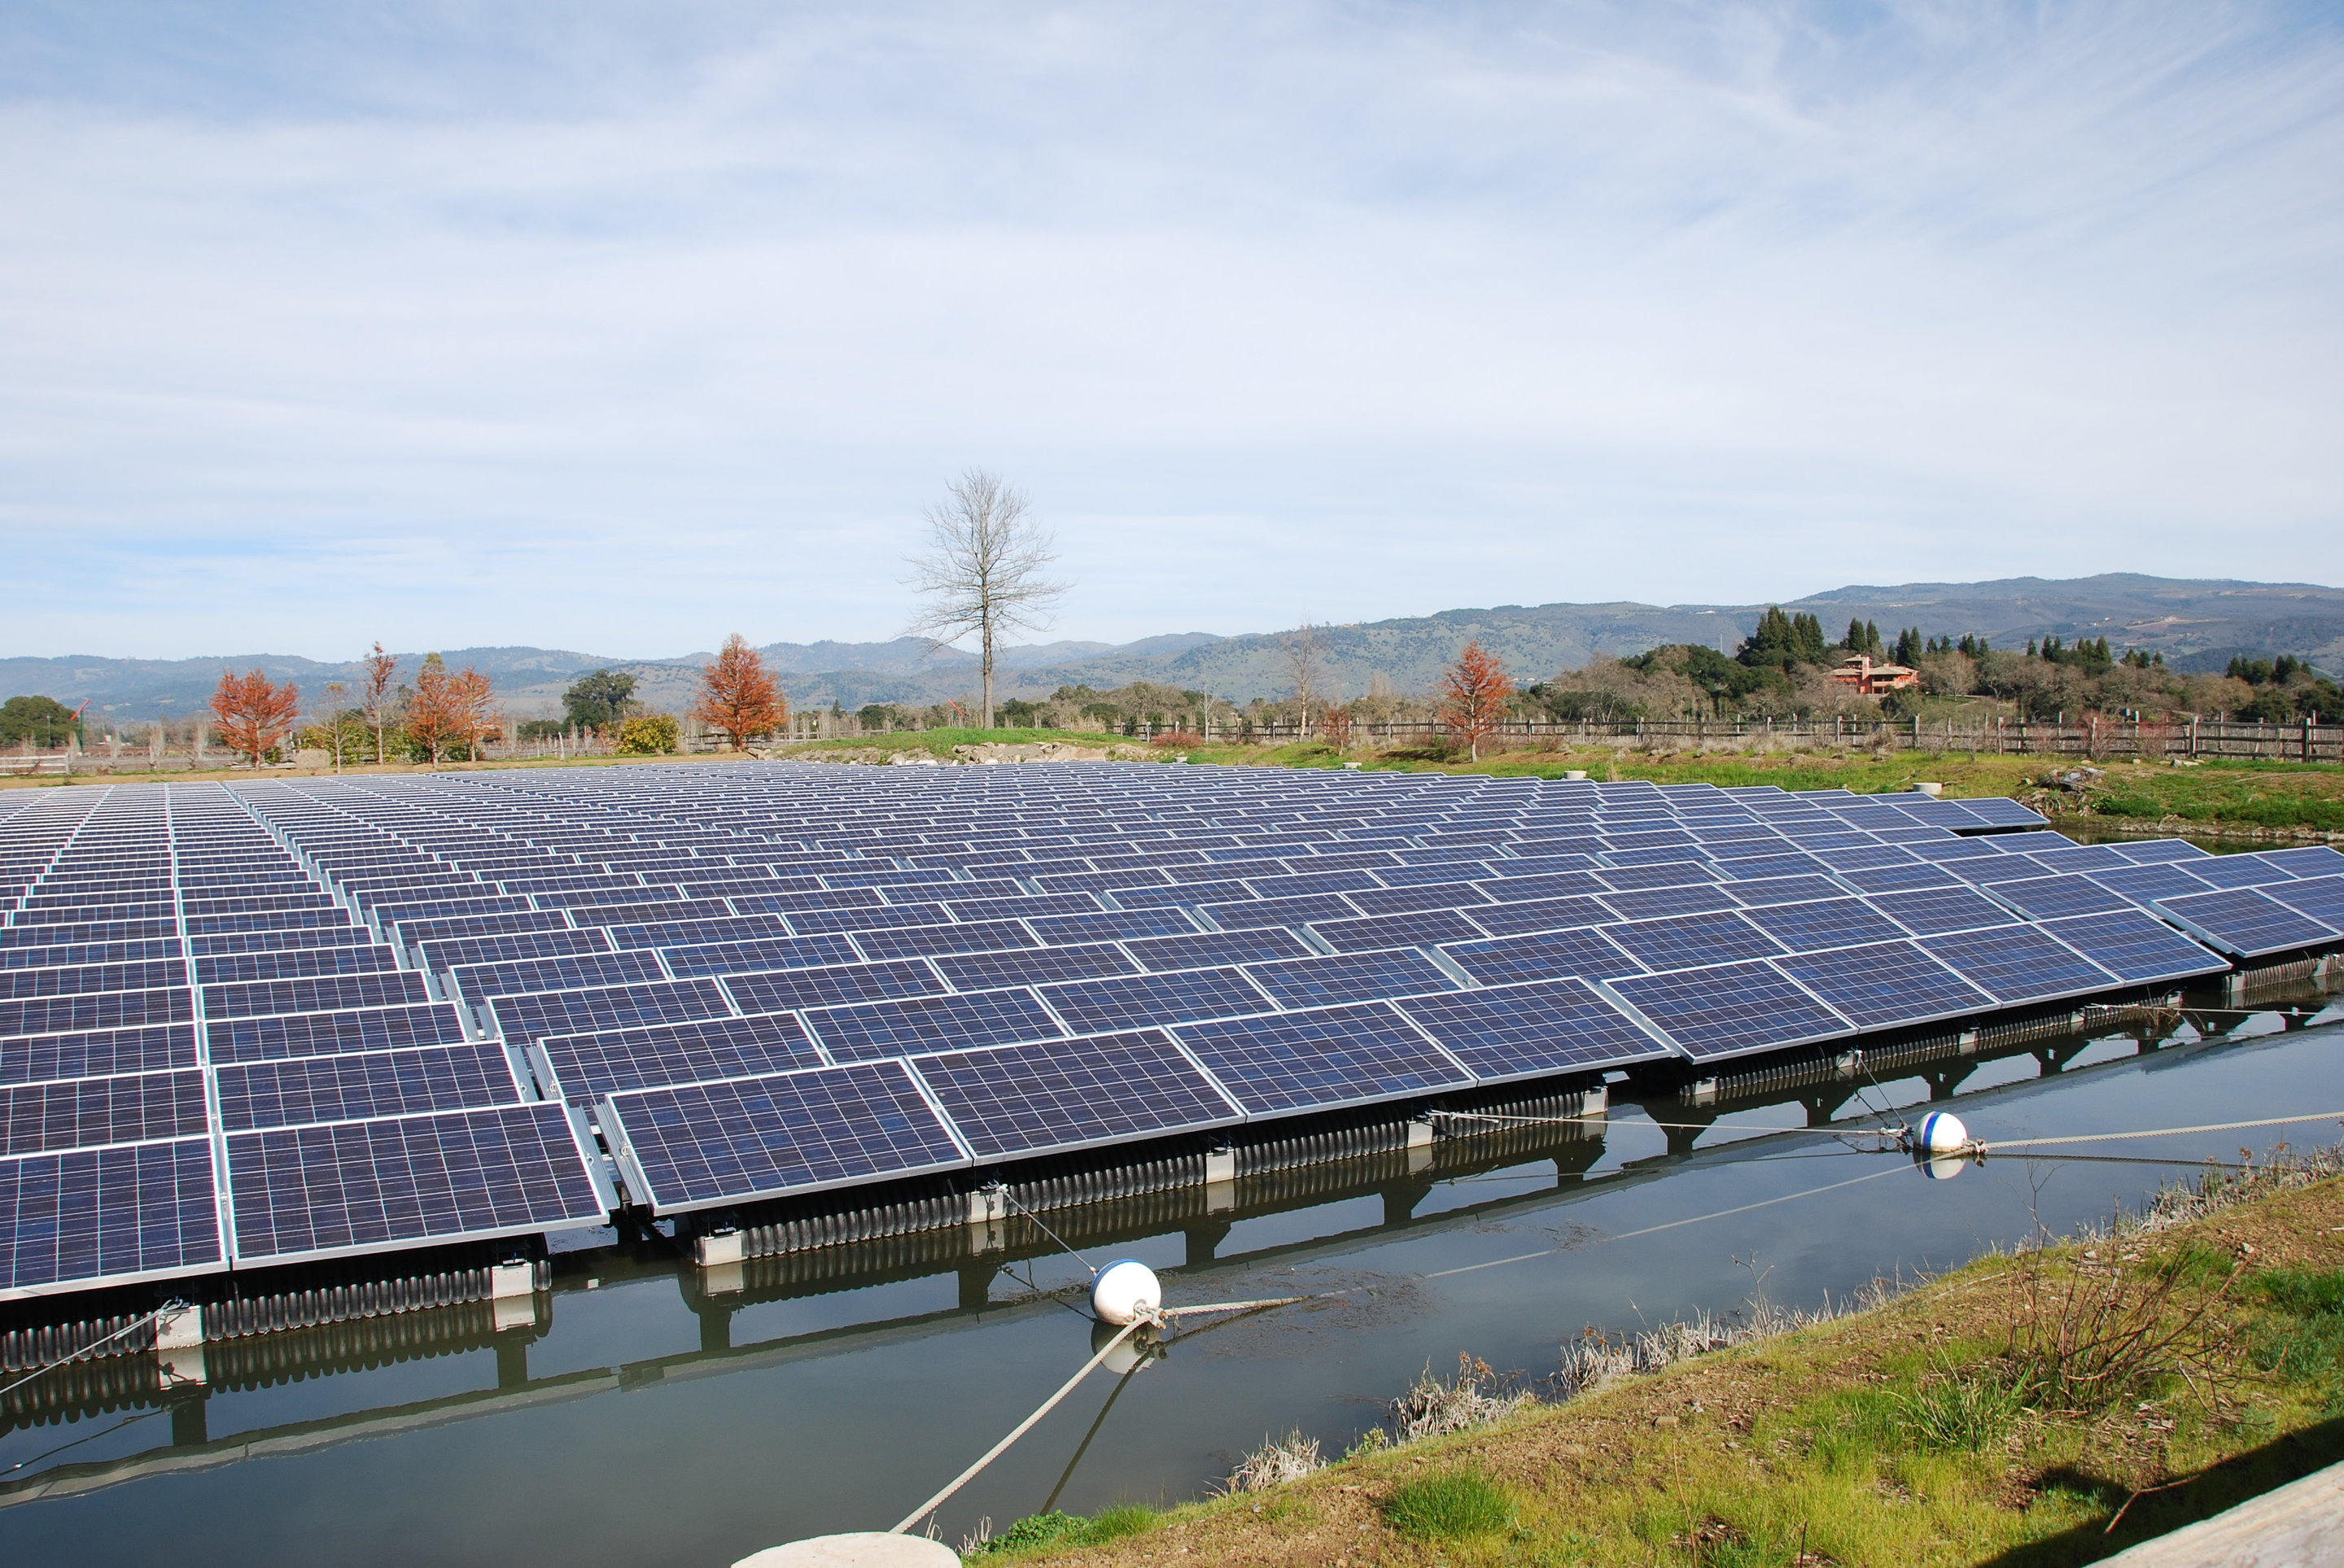 Researchers Identify Nontraditional Sites For Future Solar